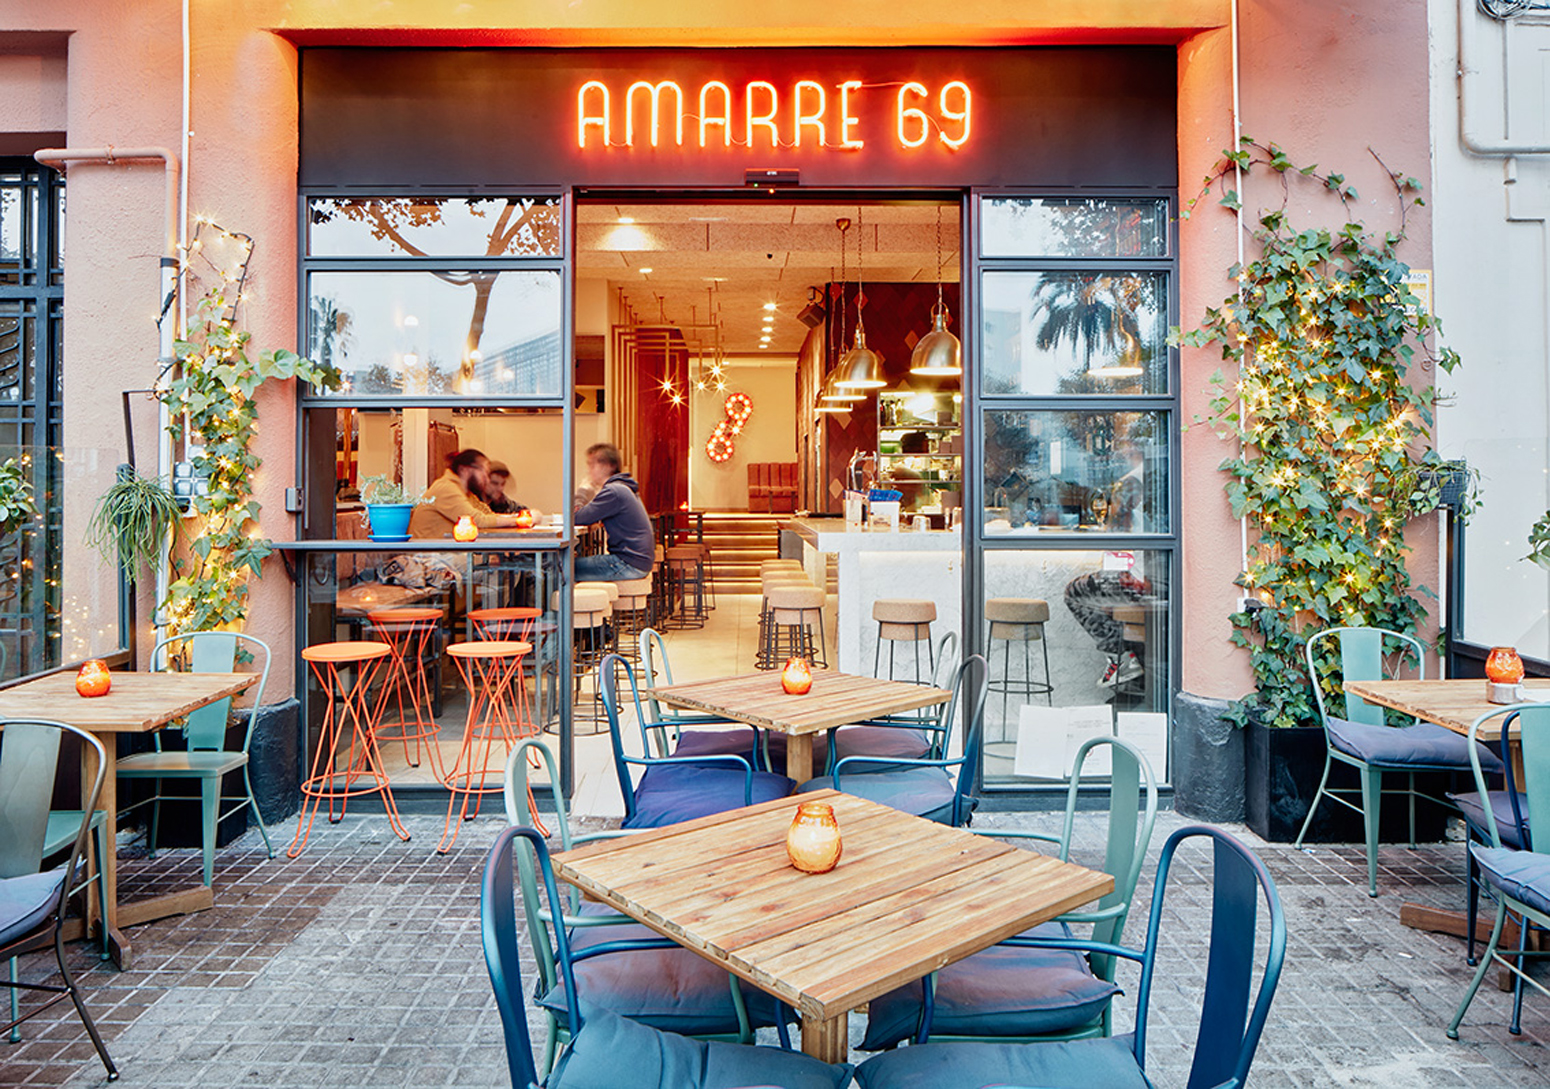 Image result for amarre 69 barcelona